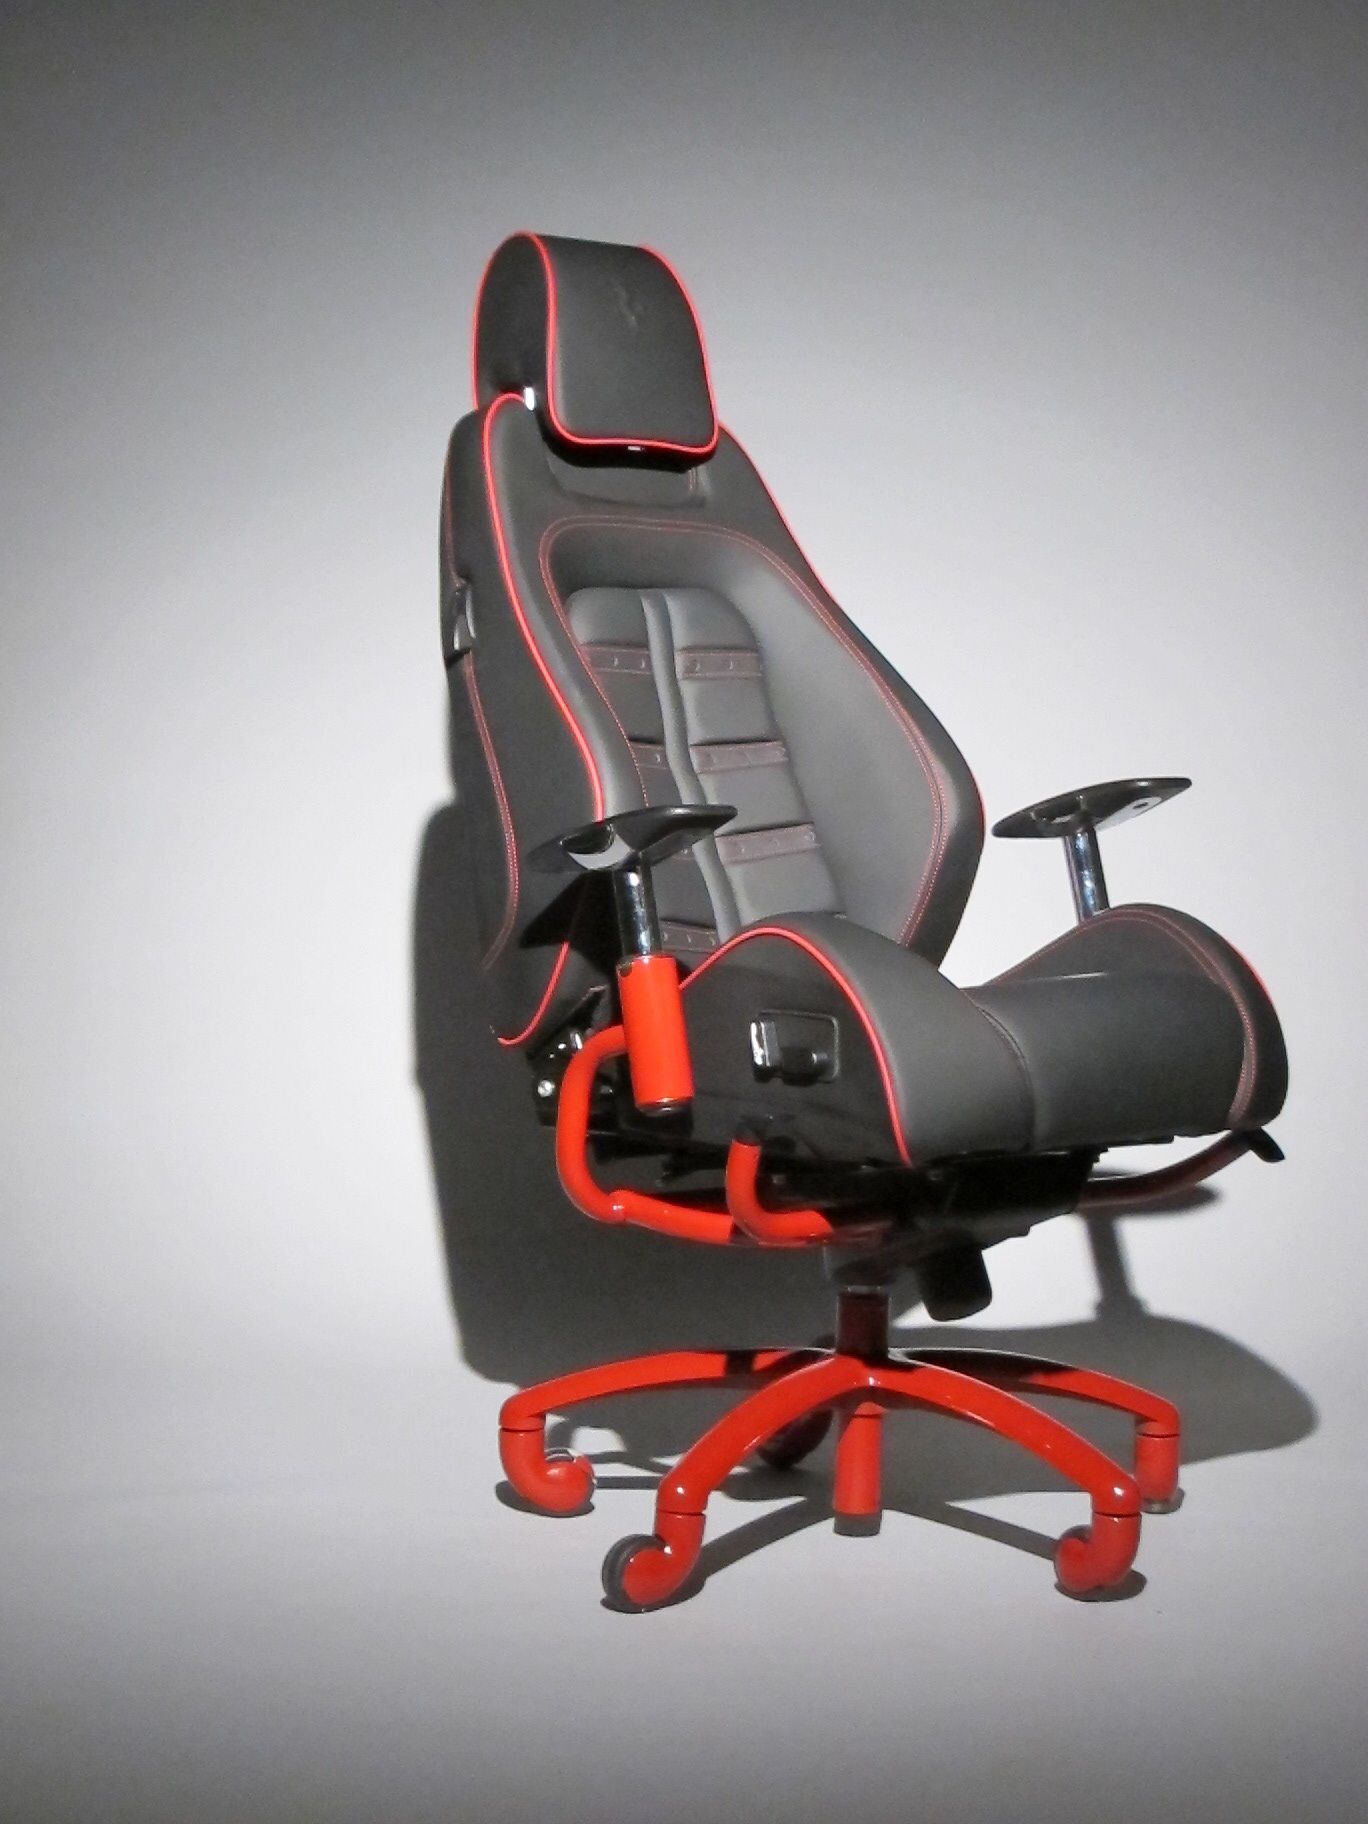 Ferrari Office Chair Waiting Chairs For Salon Authentic From Racechairs Com Made Using The Actual Seat A Real F430